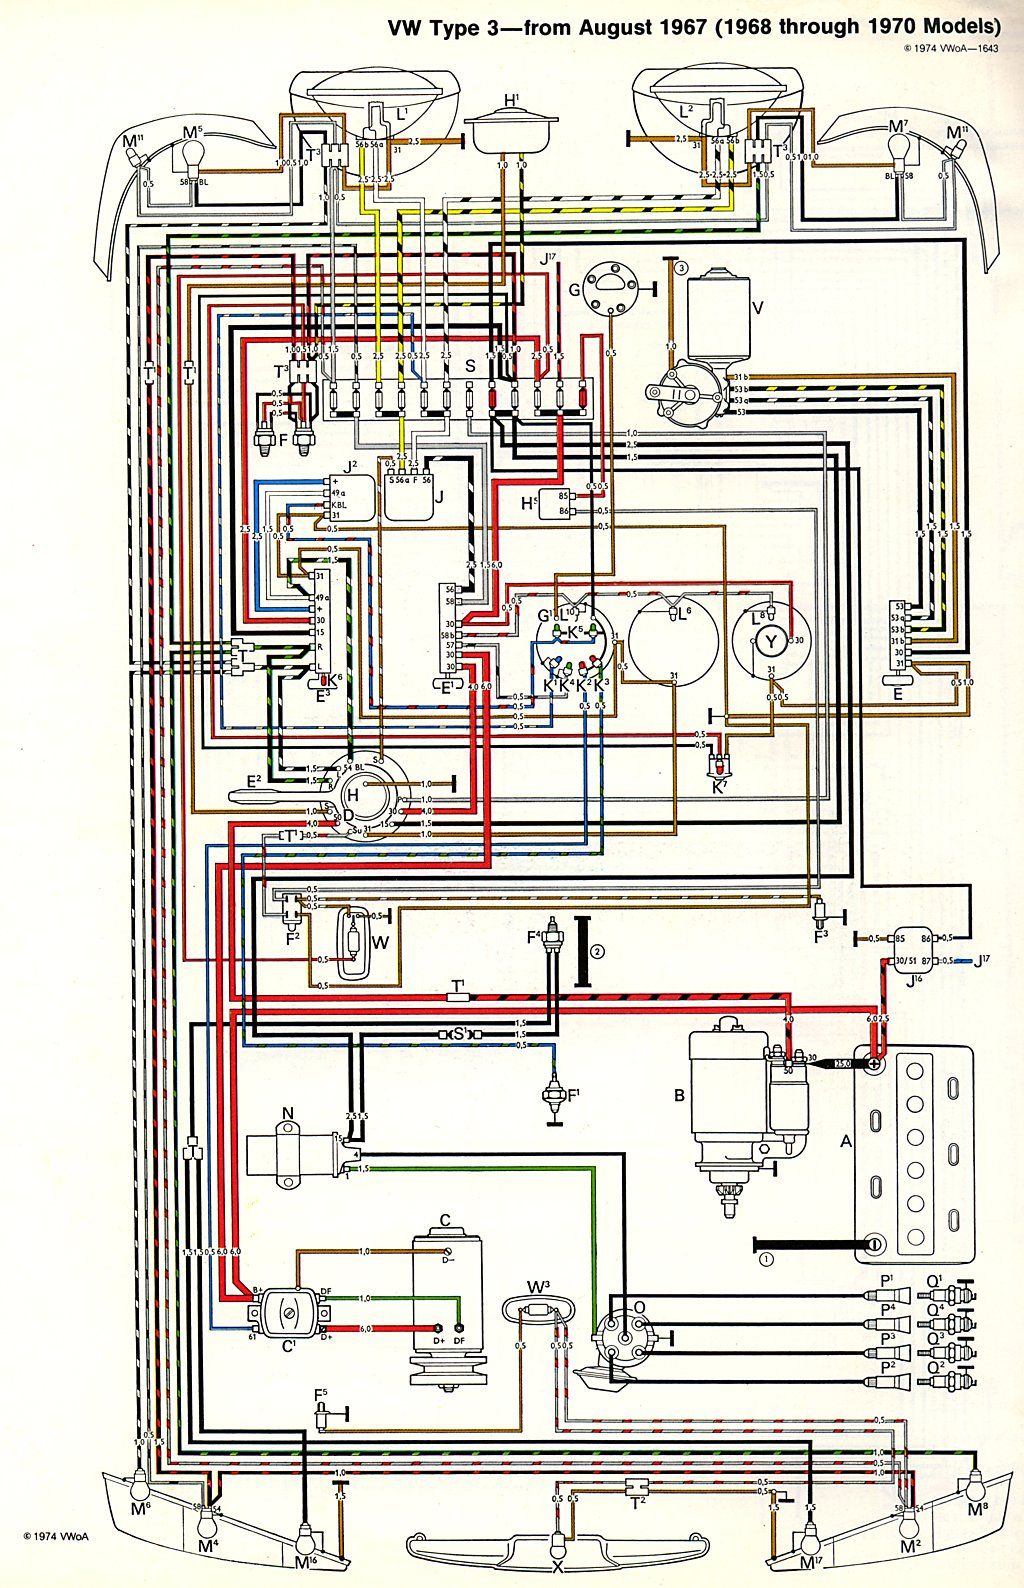 type3_6870 vw type 3 wiring diagram vw wiring diagrams free downloads \u2022 free vw type 3 wiring harness at couponss.co